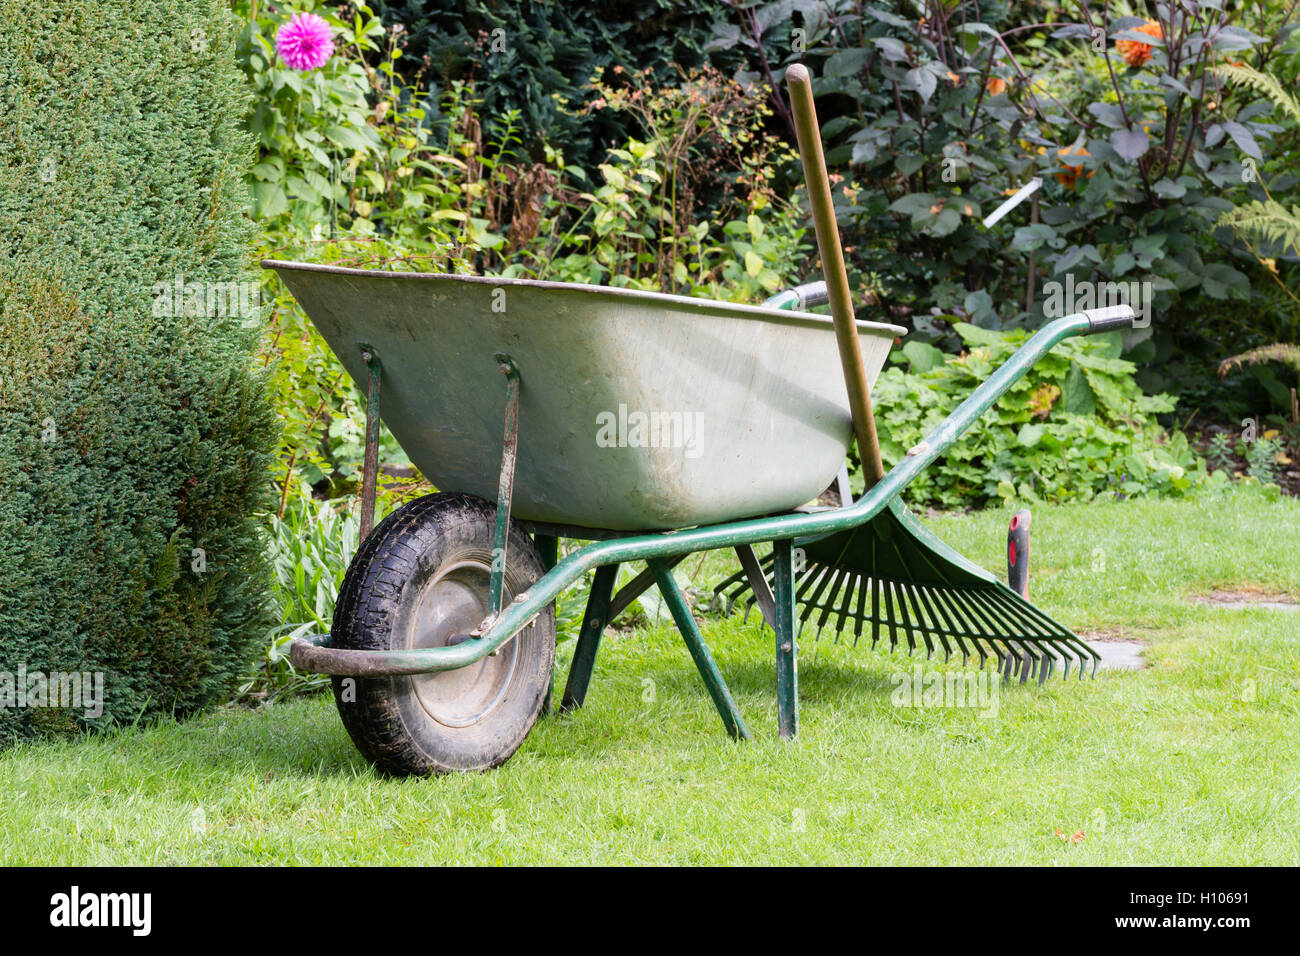 Wheelbarrow, lawn rake and trowel ready for work in a large garden - Stock Image